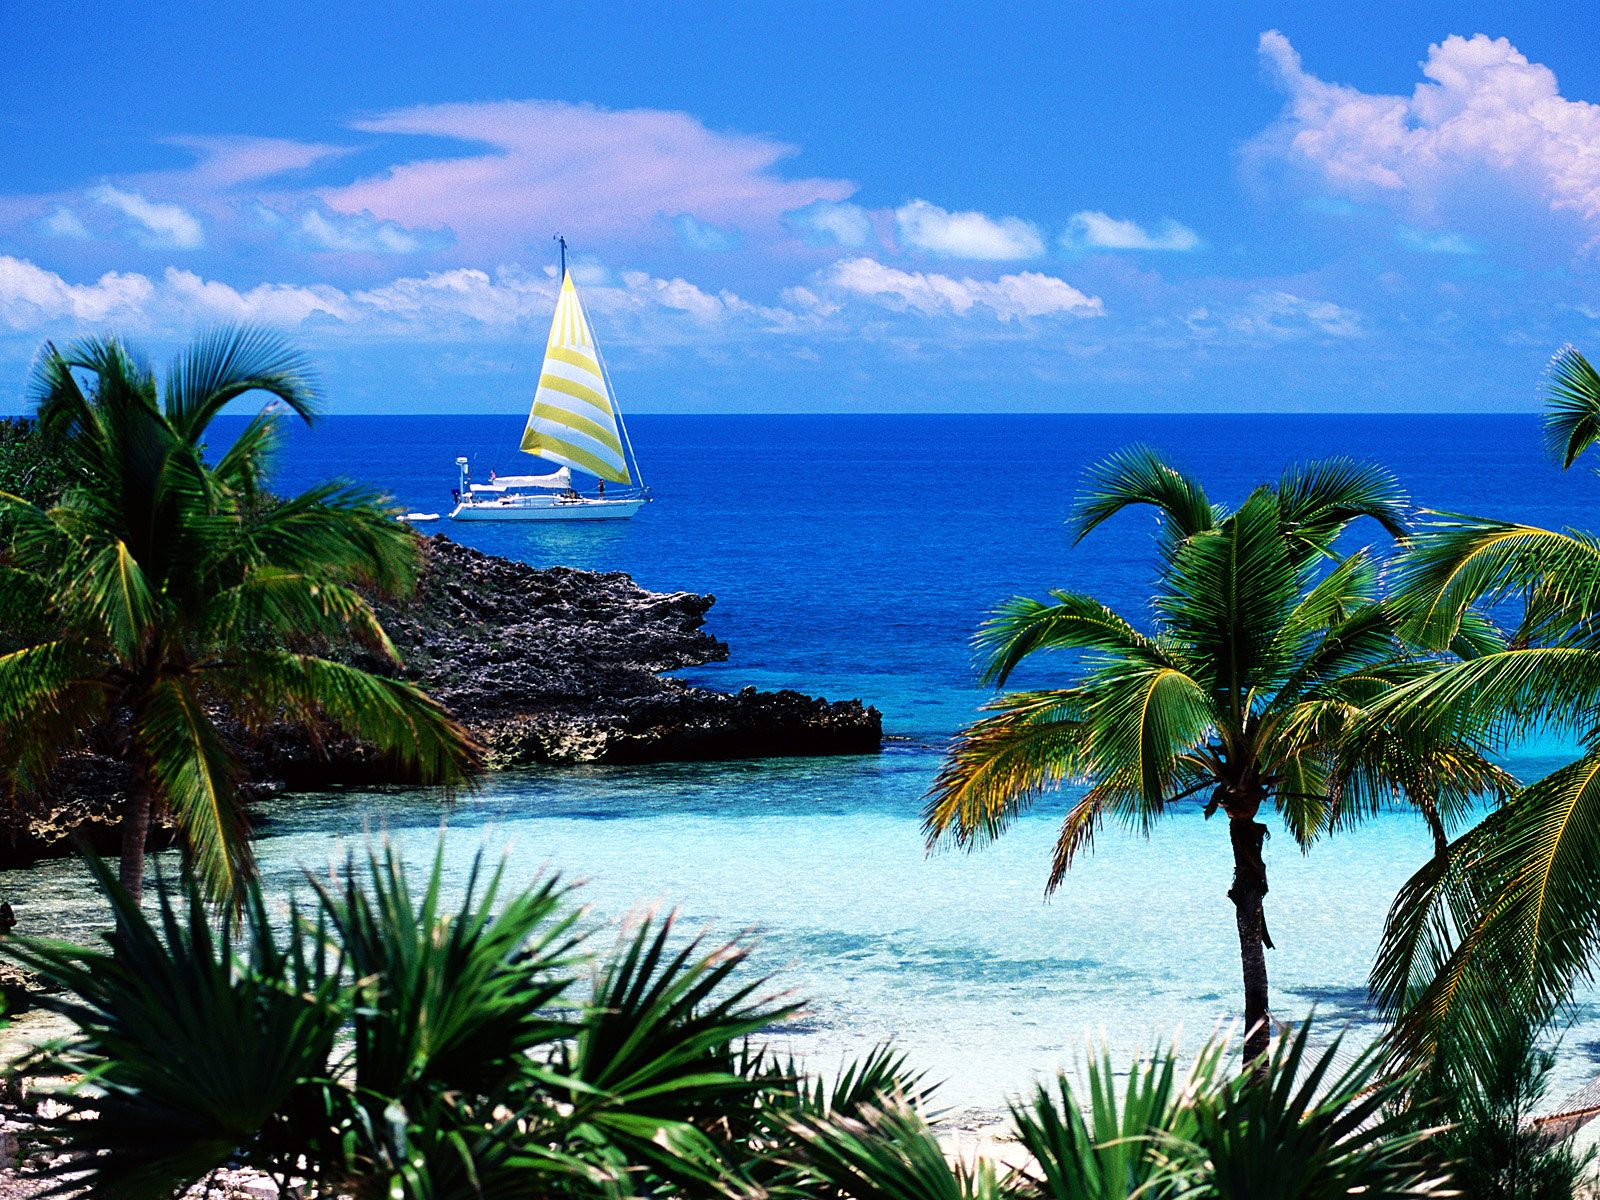 Island Bahamas Wallpaper and make this wallpaper for your desktop 1600x1200